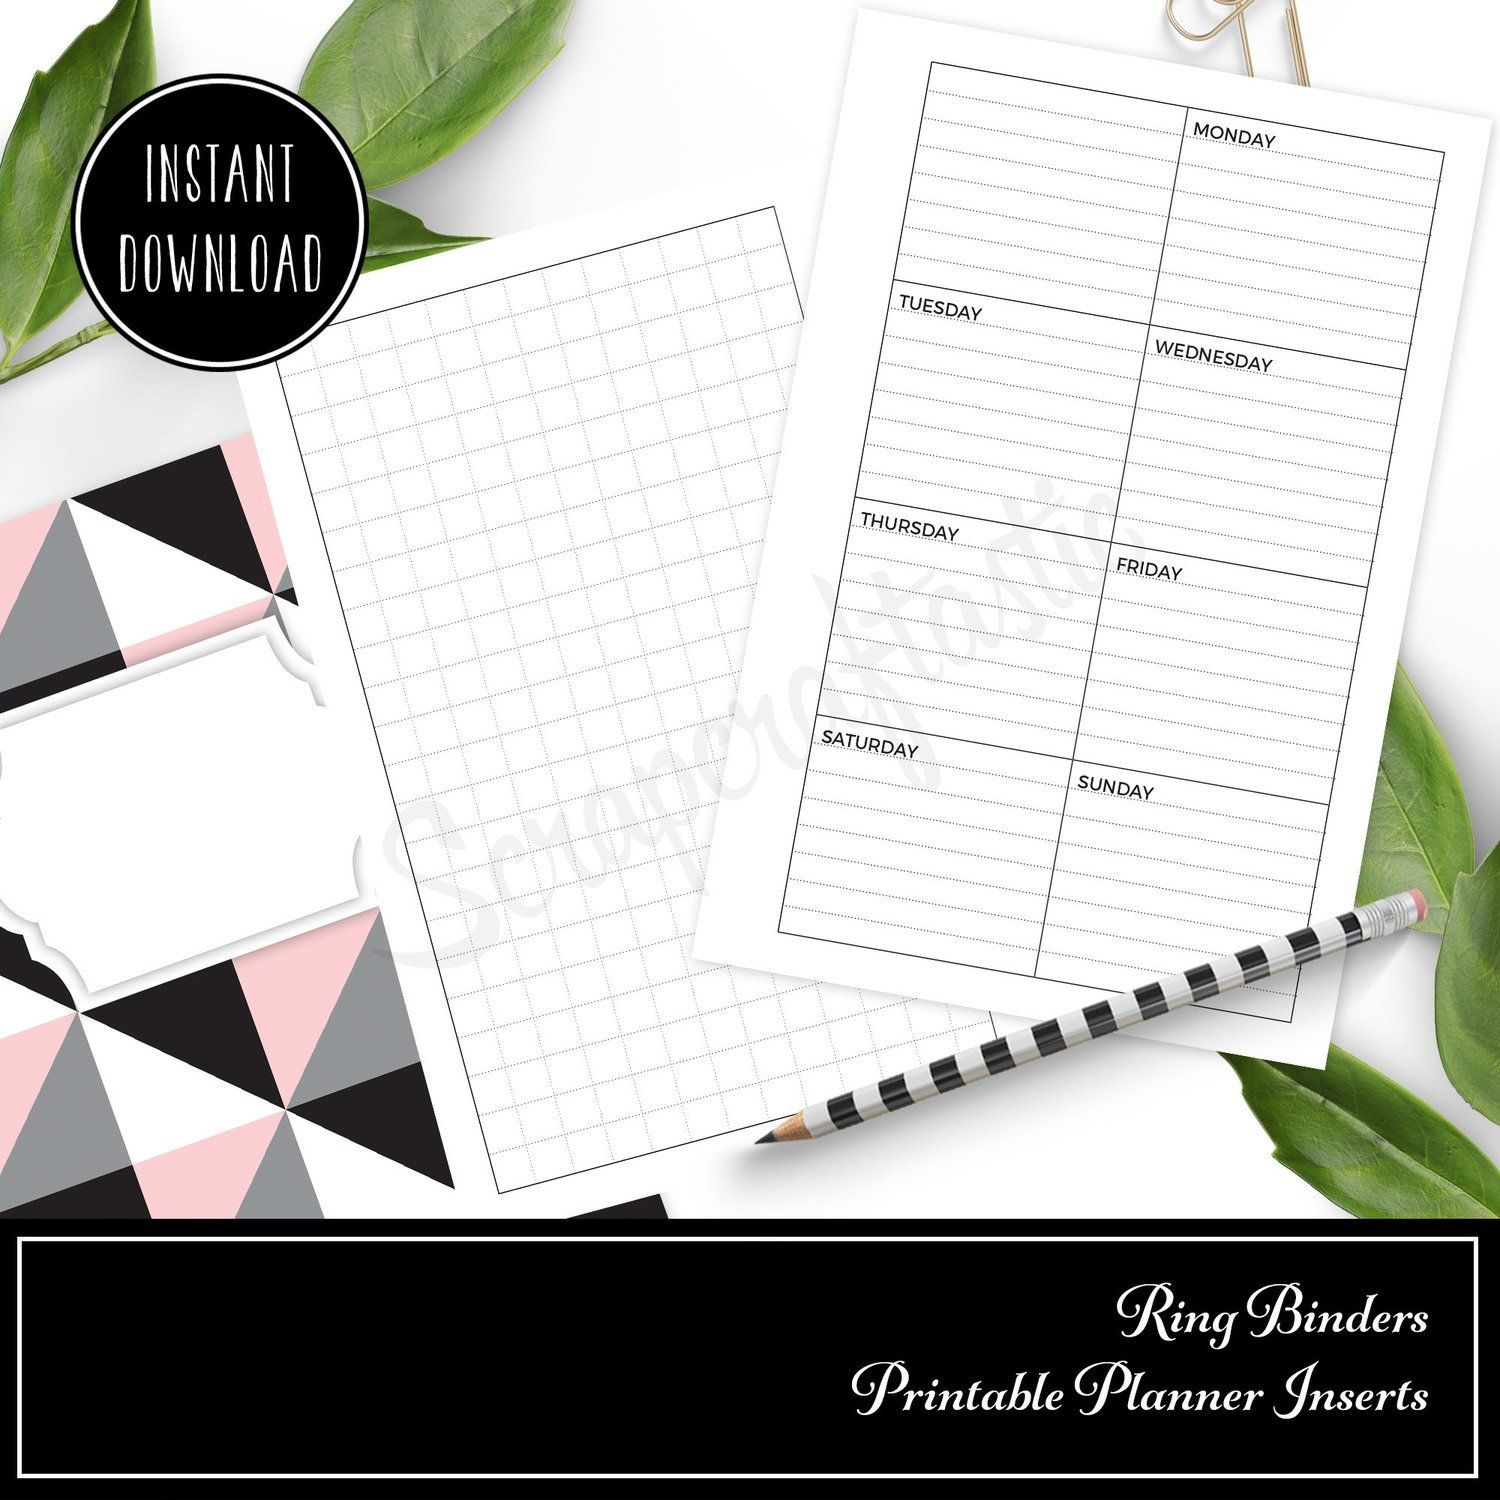 FULL PAGE LETTER SIZE - Grid and Boxed Lined Undated Weekly Printable Planner Insert